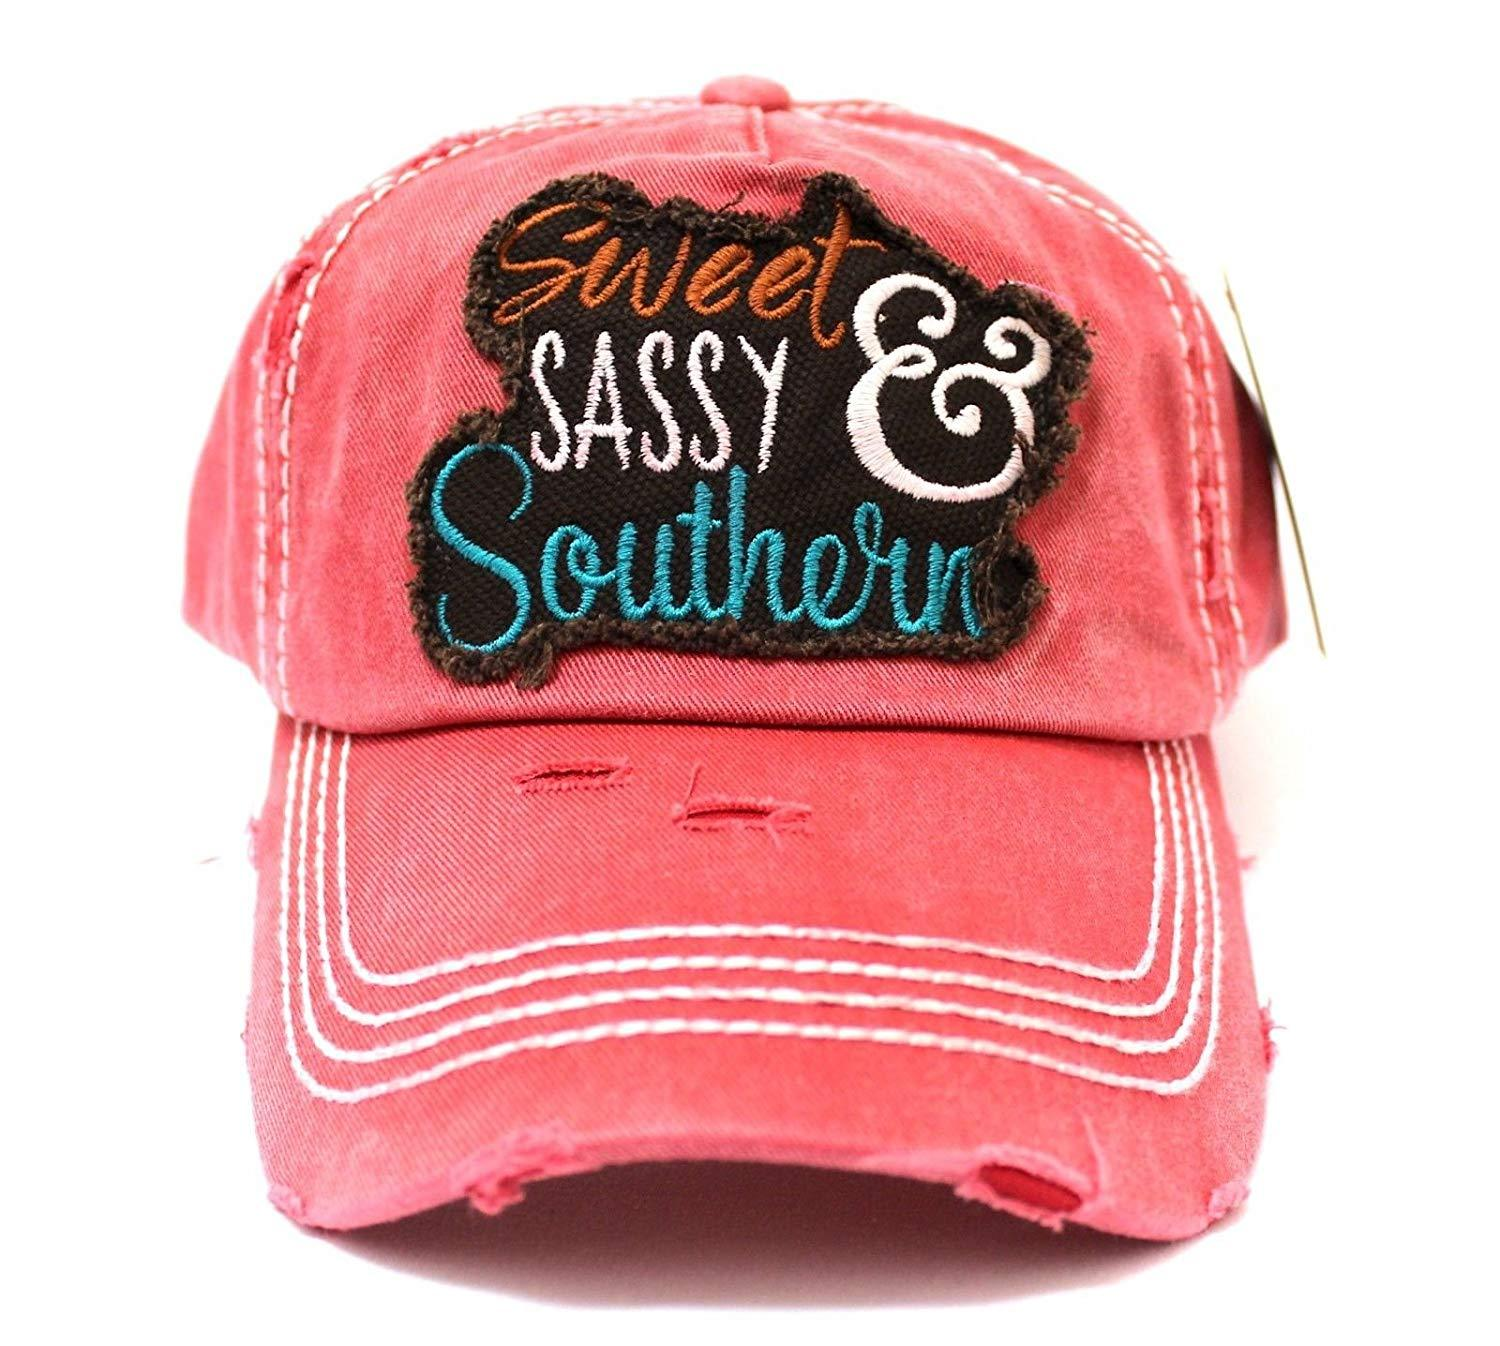 3c4b24fbf New! Sweet, Sassy & Southern Vintage Baseball Cap- Coral | Products ...